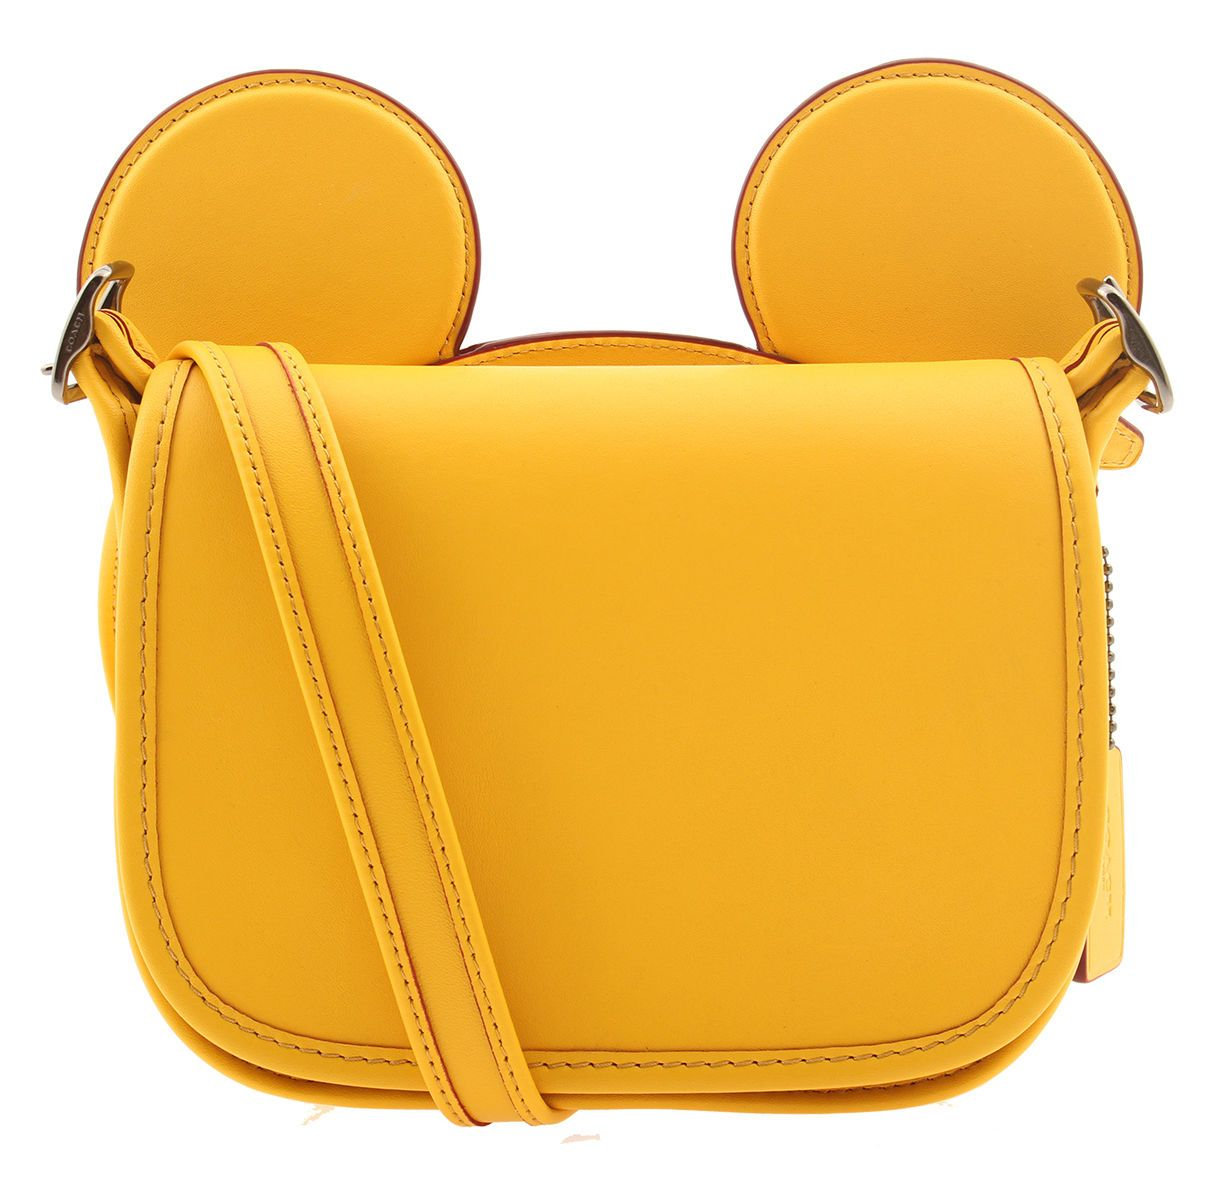 Yellow Coach Purse (With images) Crossbody shoulder bag